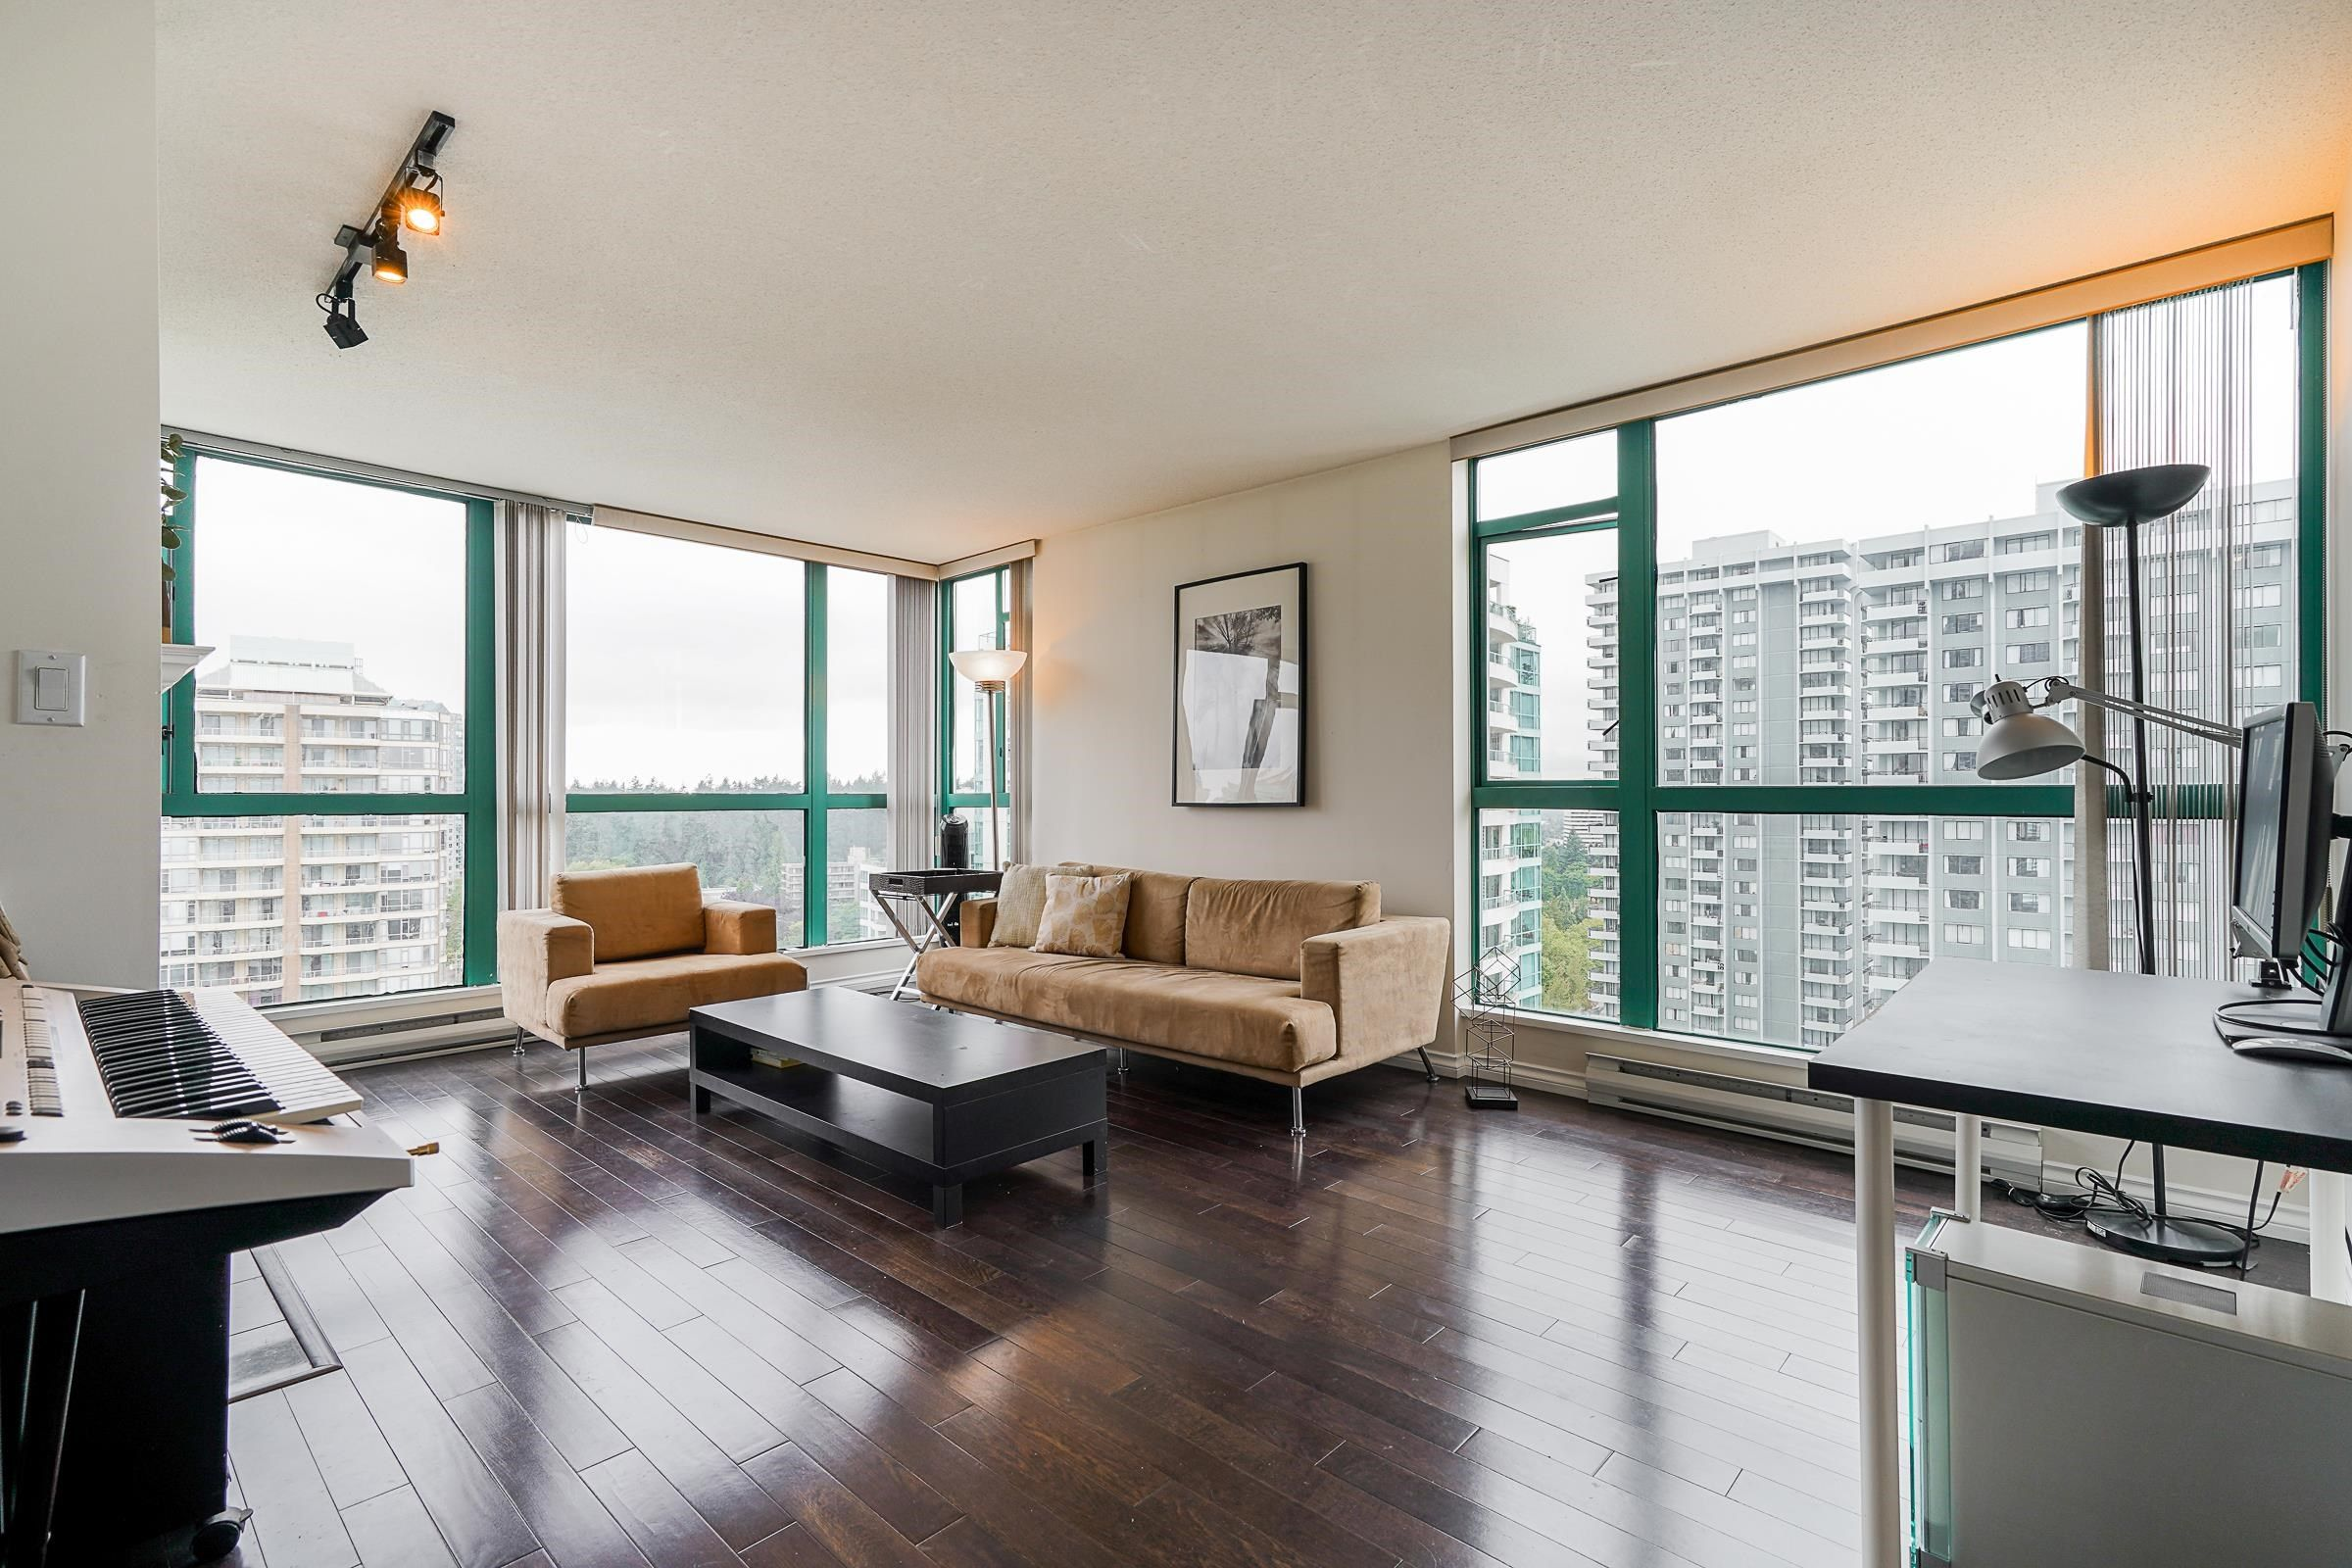 """Main Photo: 1804 5833 WILSON Avenue in Burnaby: Central Park BS Condo for sale in """"PARAMOUNT TOWER 1 BY BOSA"""" (Burnaby South)  : MLS®# R2613011"""